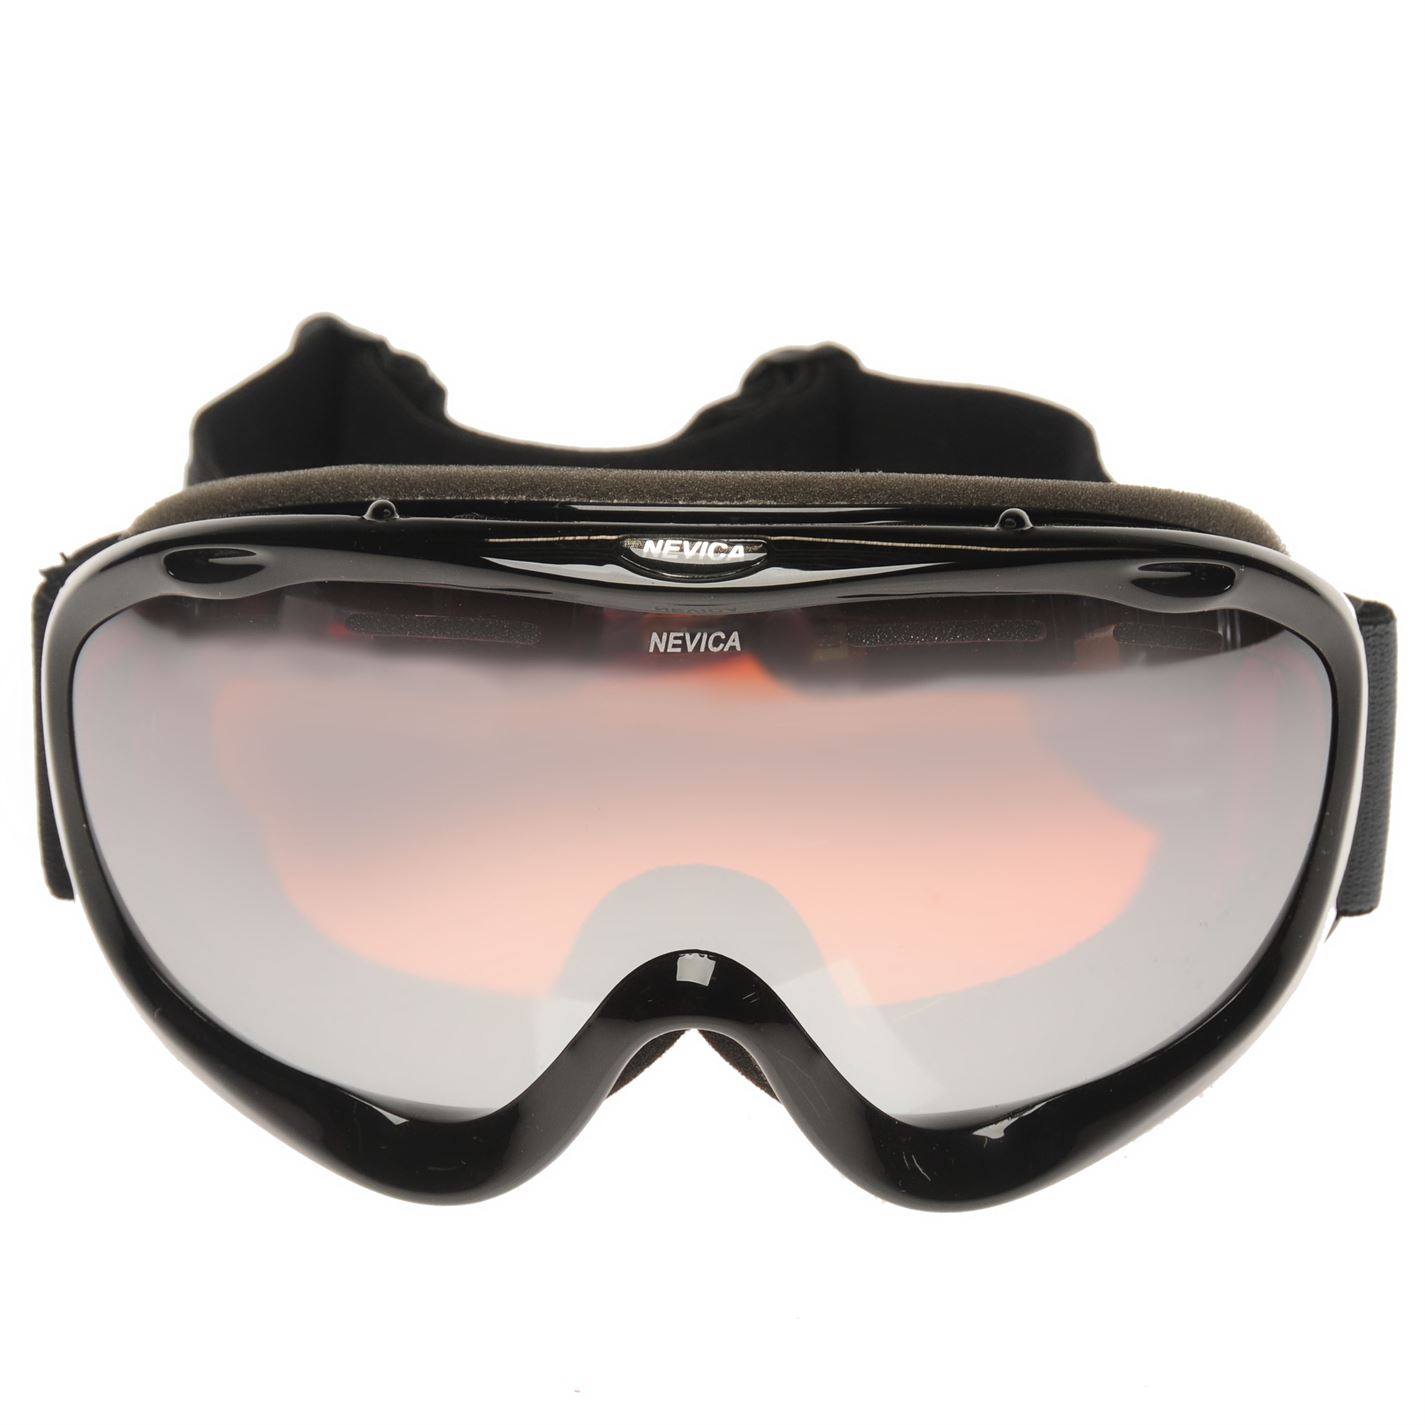 51a80d55ce8 Nevica-Vail-Ski-Goggles-Mens-Gents-Headstrap thumbnail 10